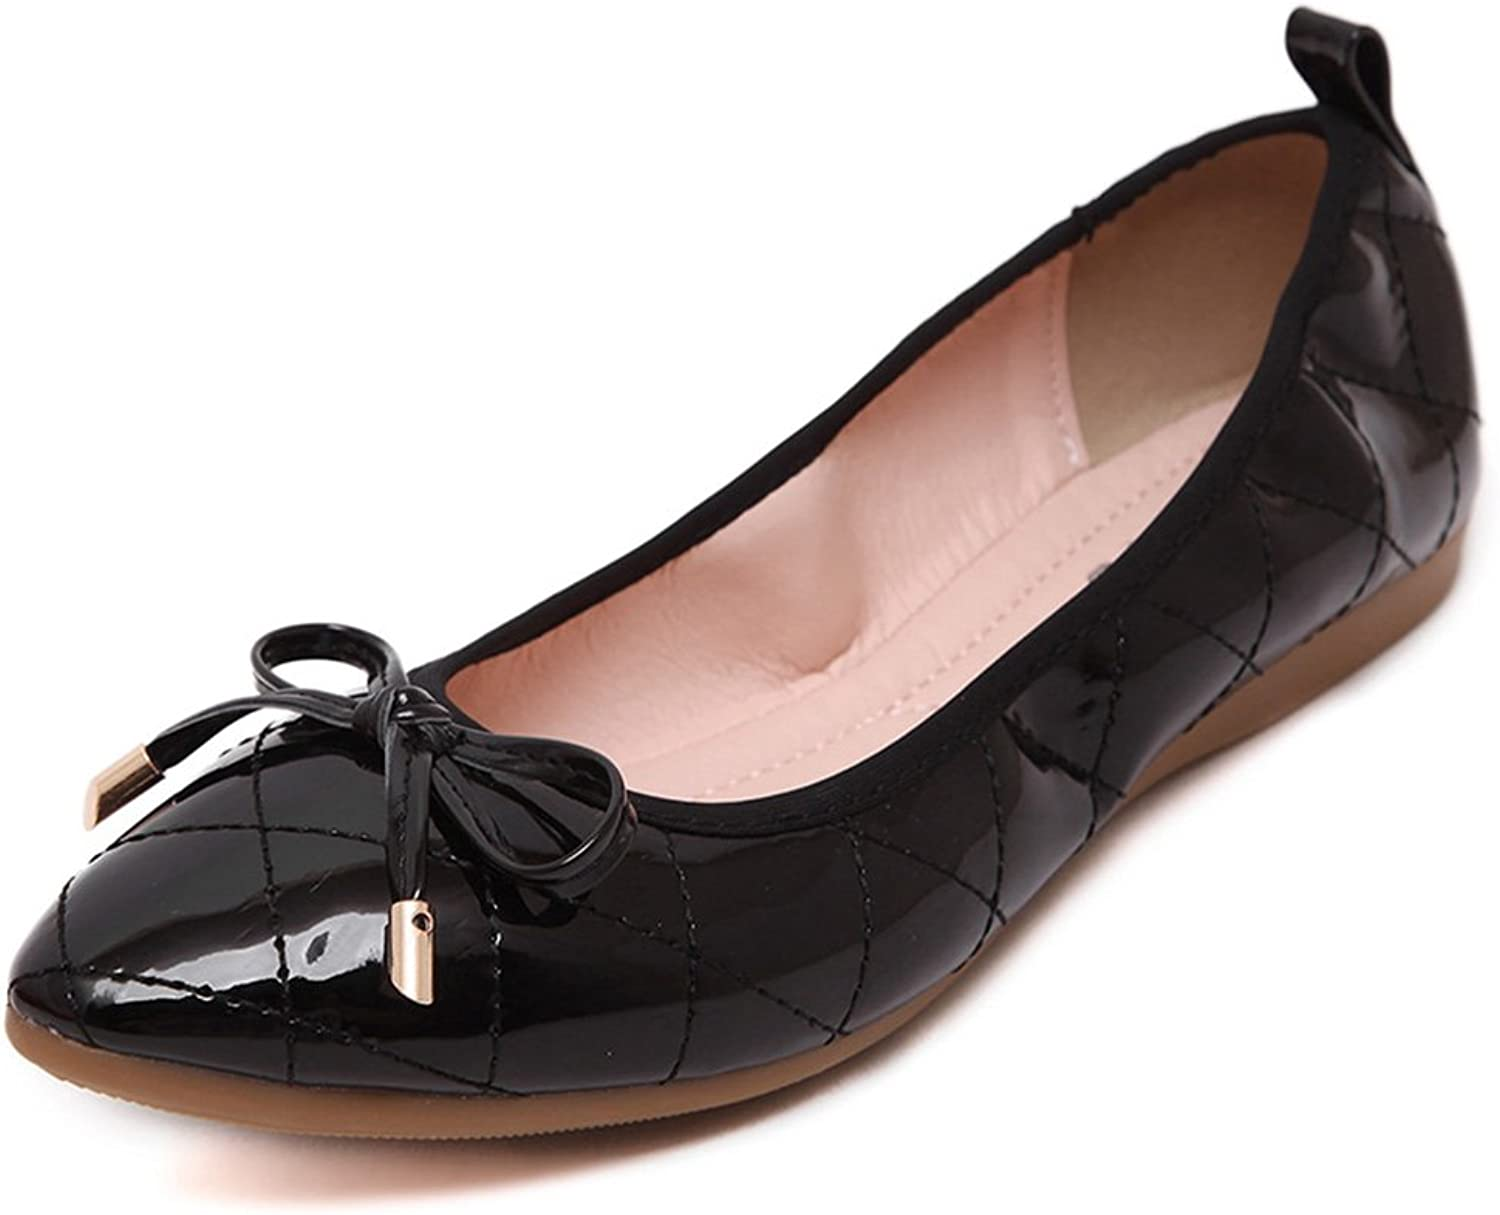 Meblvs Womens Leather Fashion Bowknot Slip On Loafer